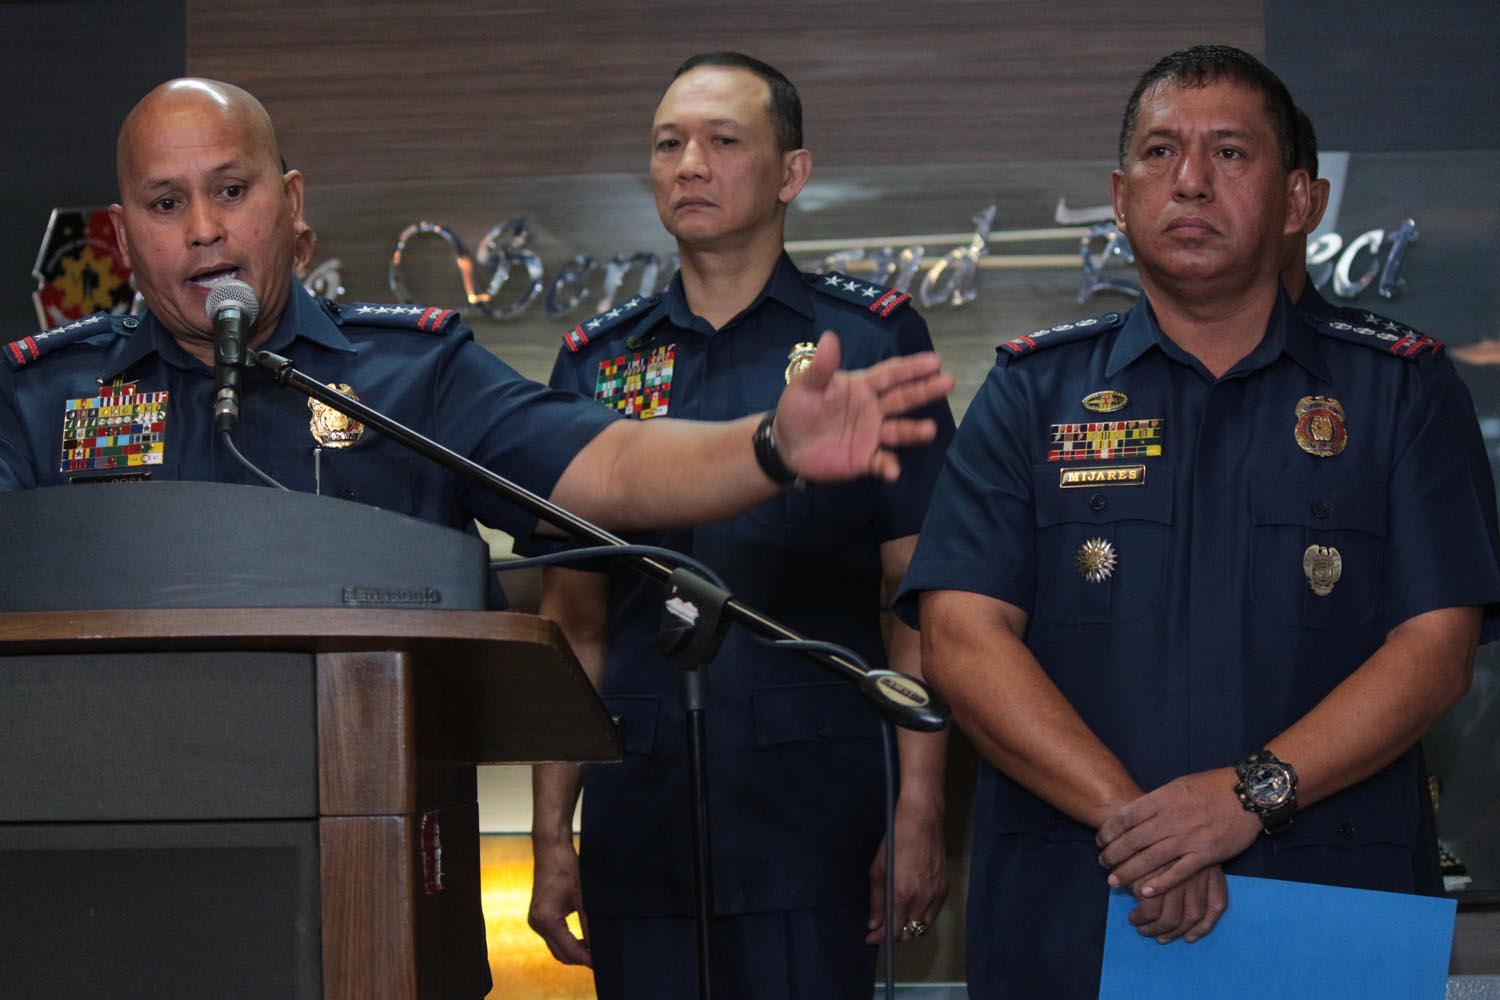 AT THE HELM. PNP chief Ronald dela Rosa introduces Senior Superintendent Graciano Mjiares as head of the newly formed PNP Drug Enforcement Group on Monday, March 6, 2017. Photo by Darren Langit/Rappler